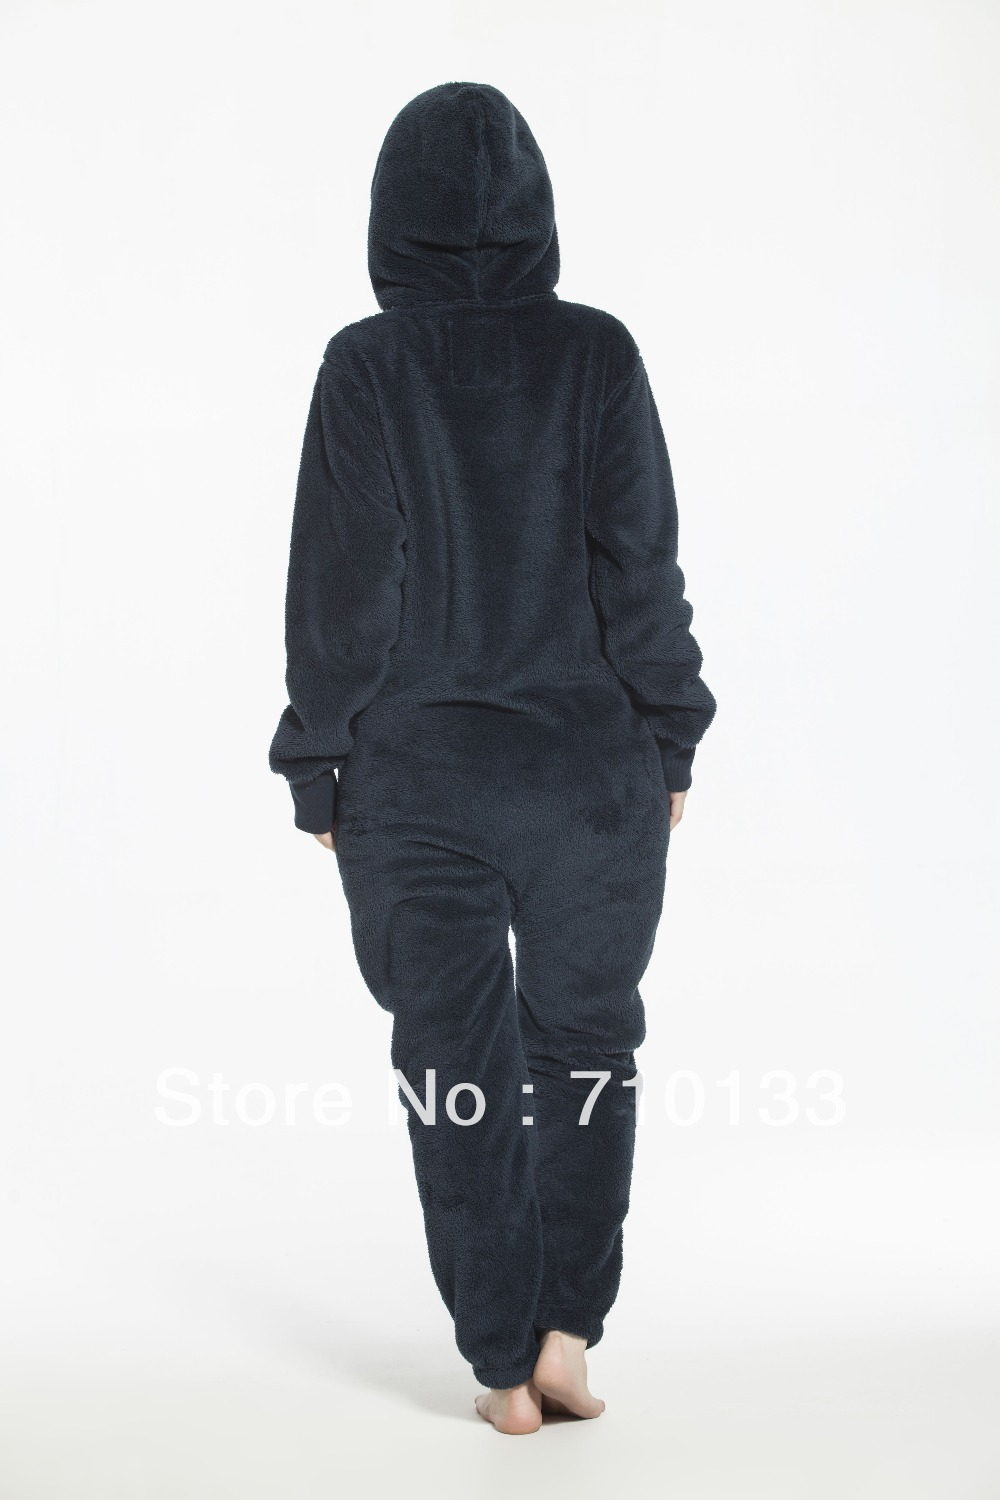 Join Adult stinger suit unisex more modest